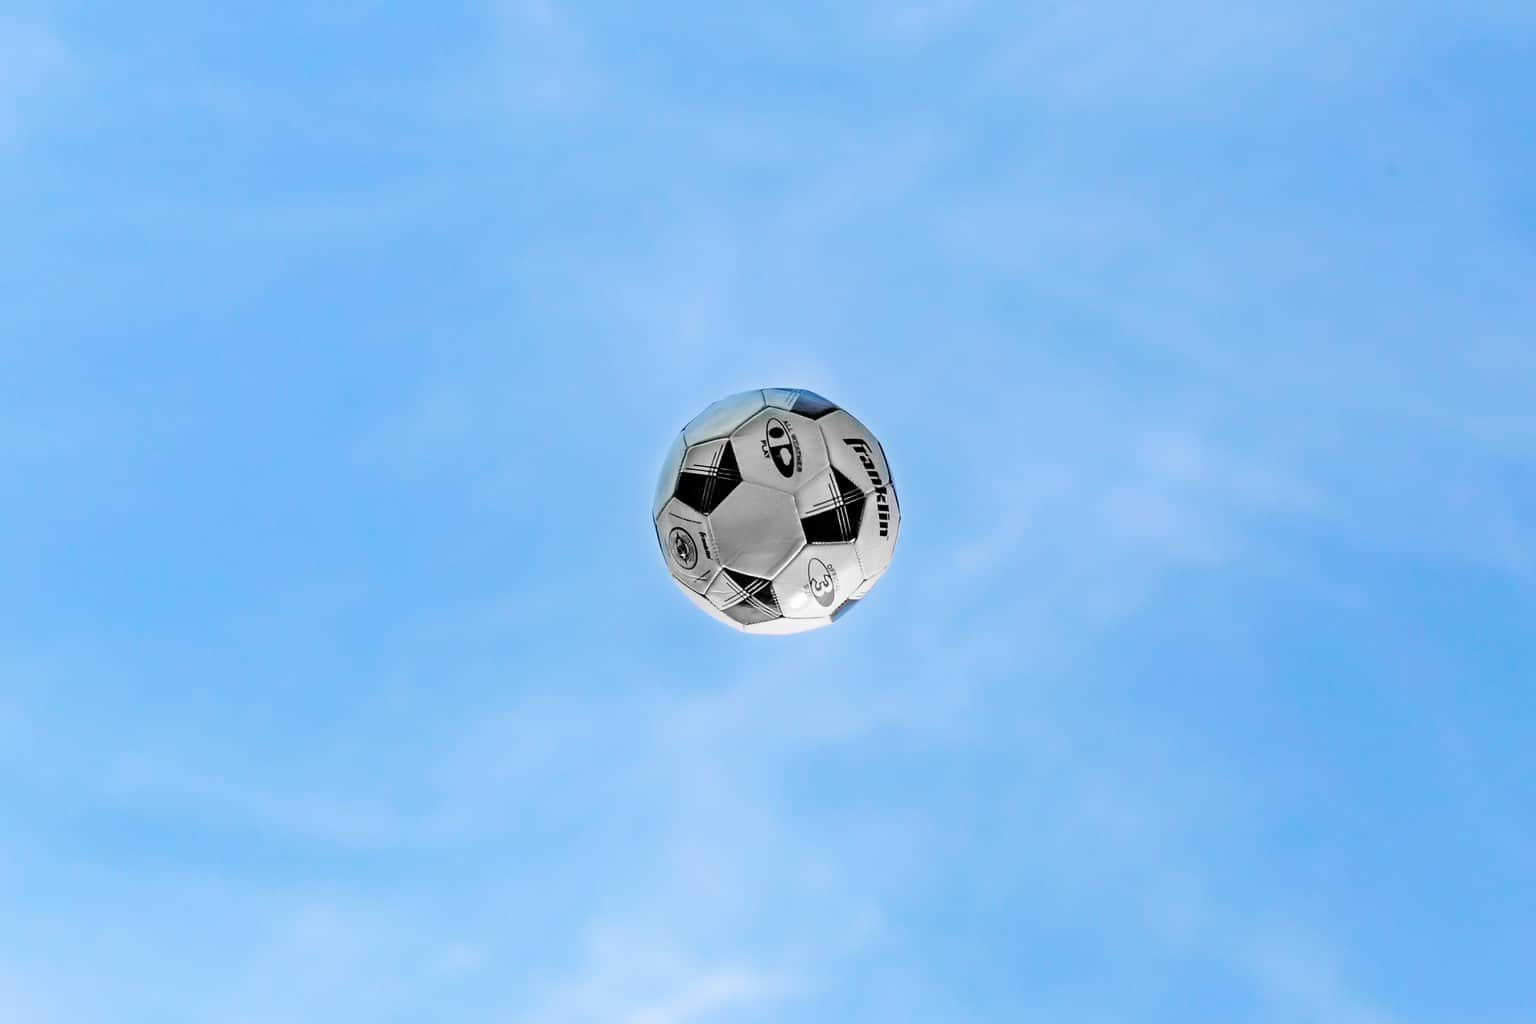 White and black soccer ball flying in the air